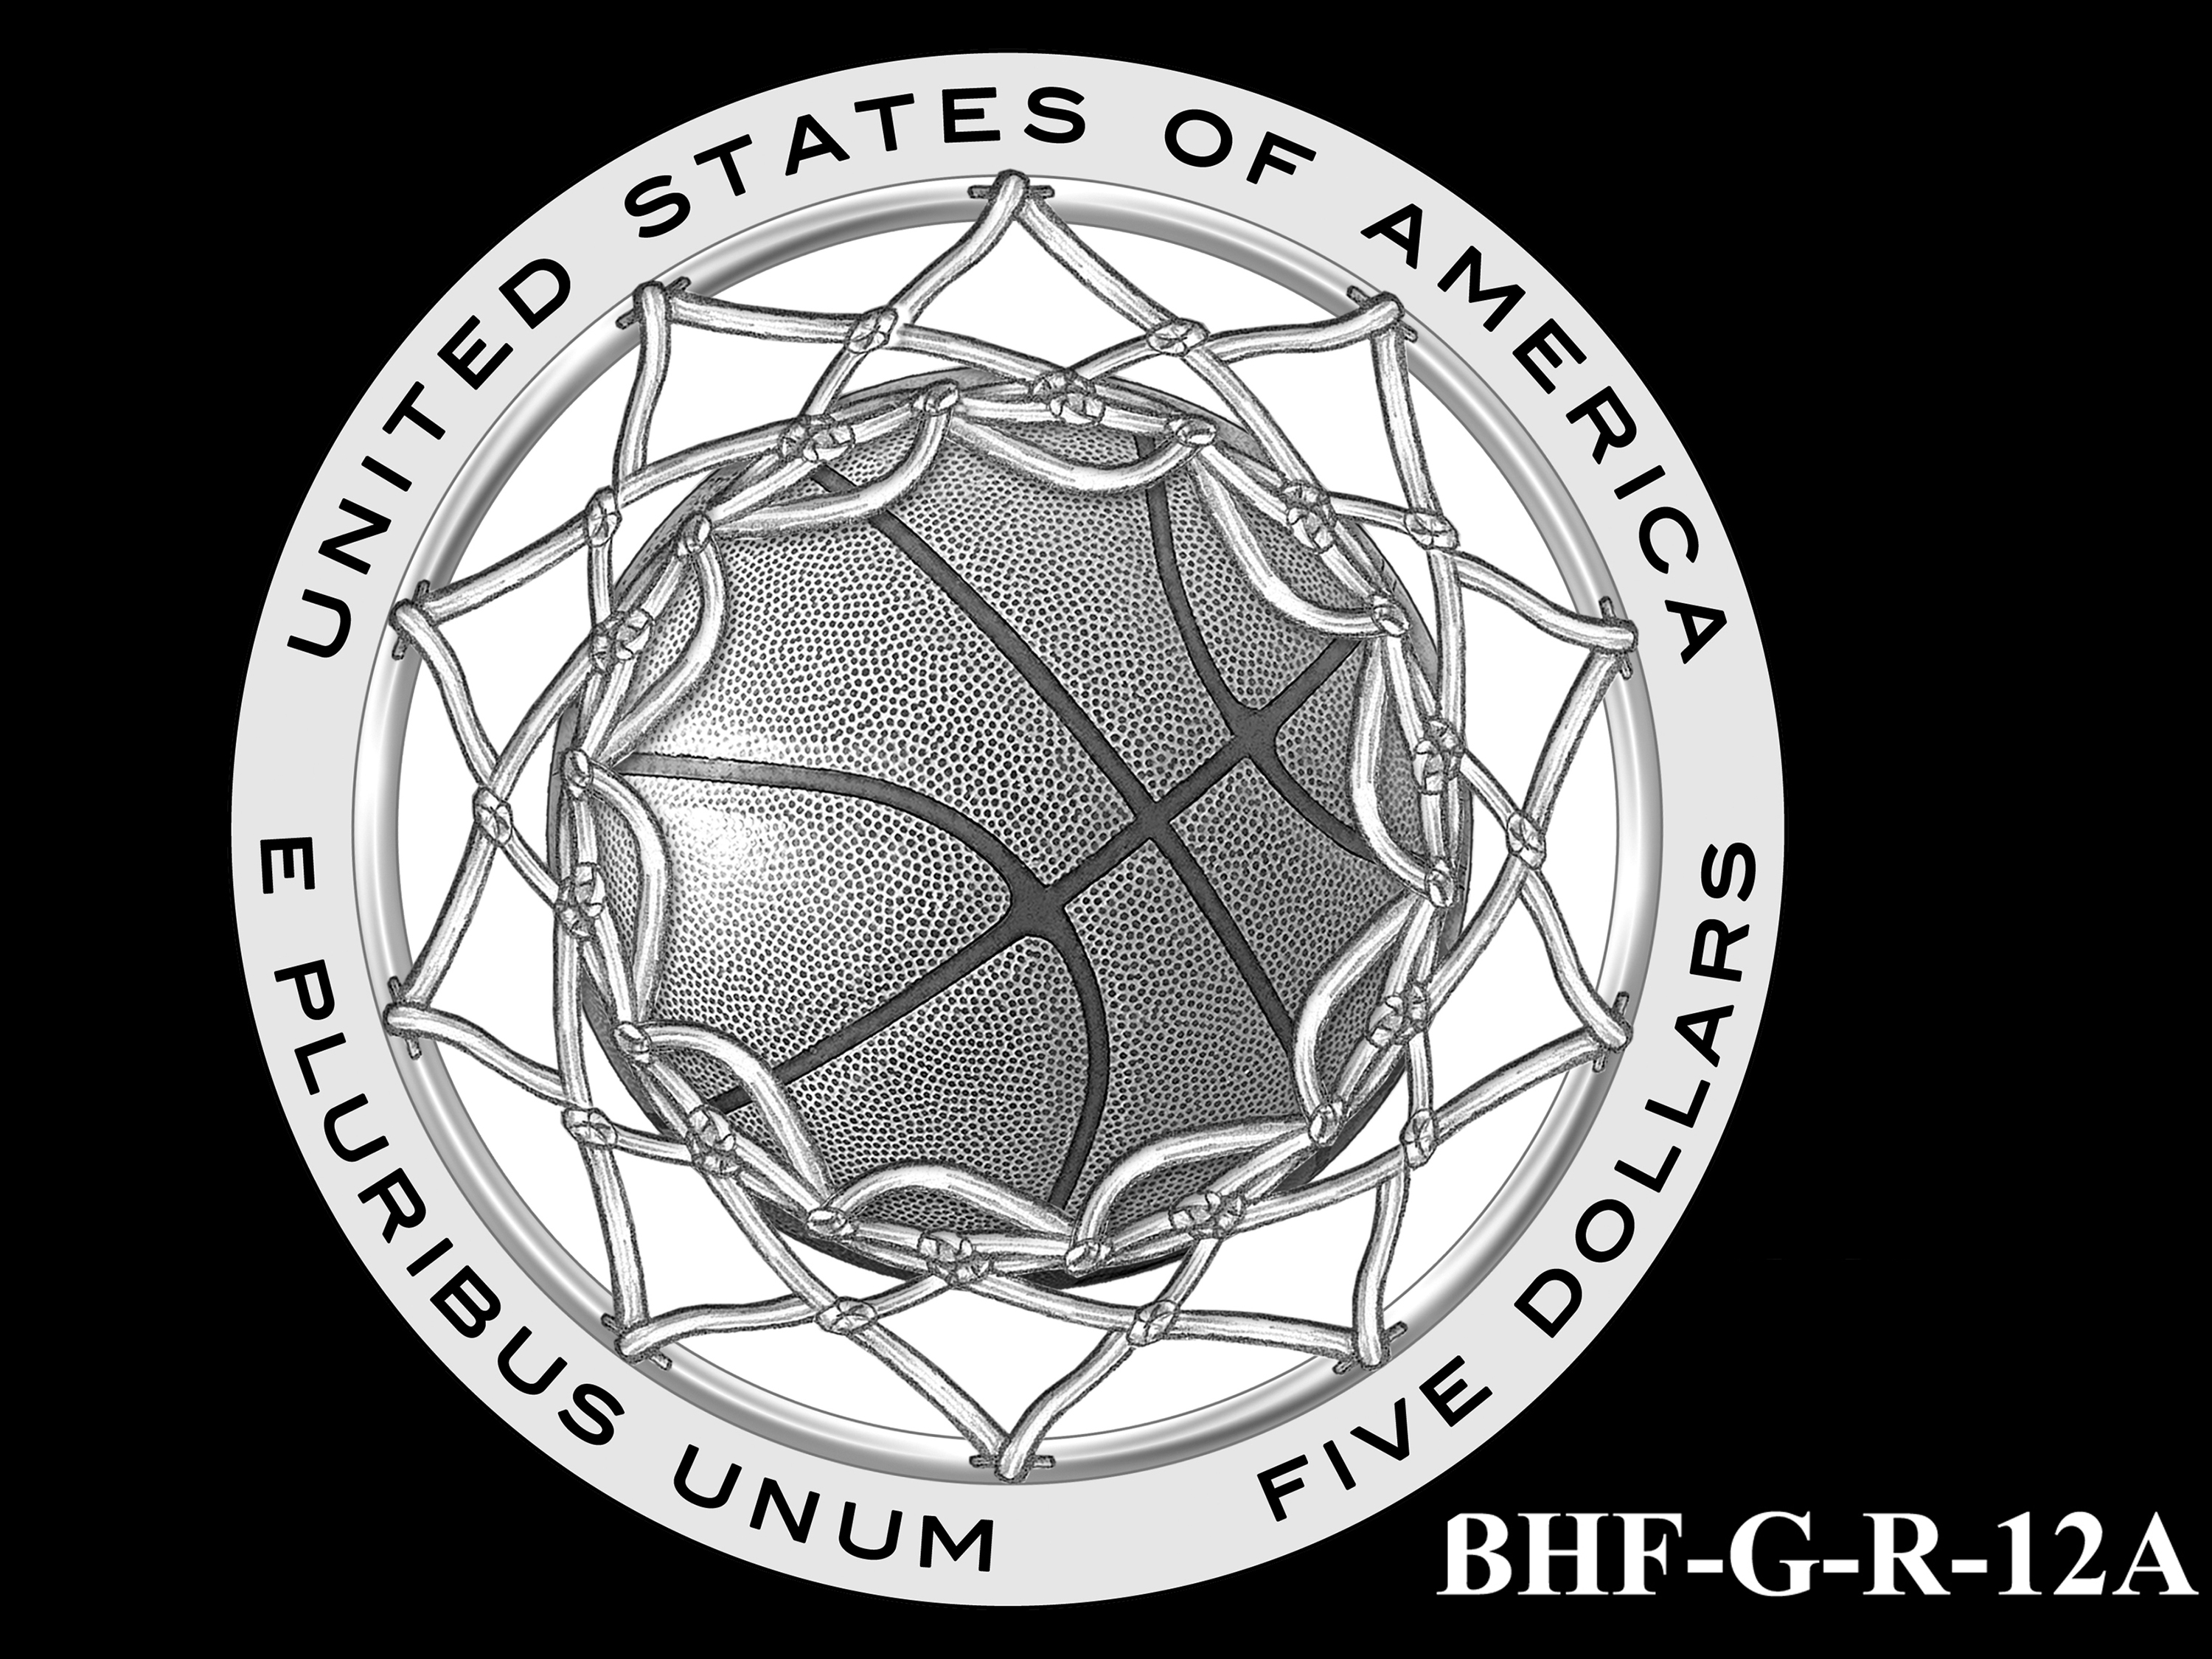 BHF-G-R-12A -- 2020 Basketball Hall of Fame Commemorative Coin Program - Gold Reverse